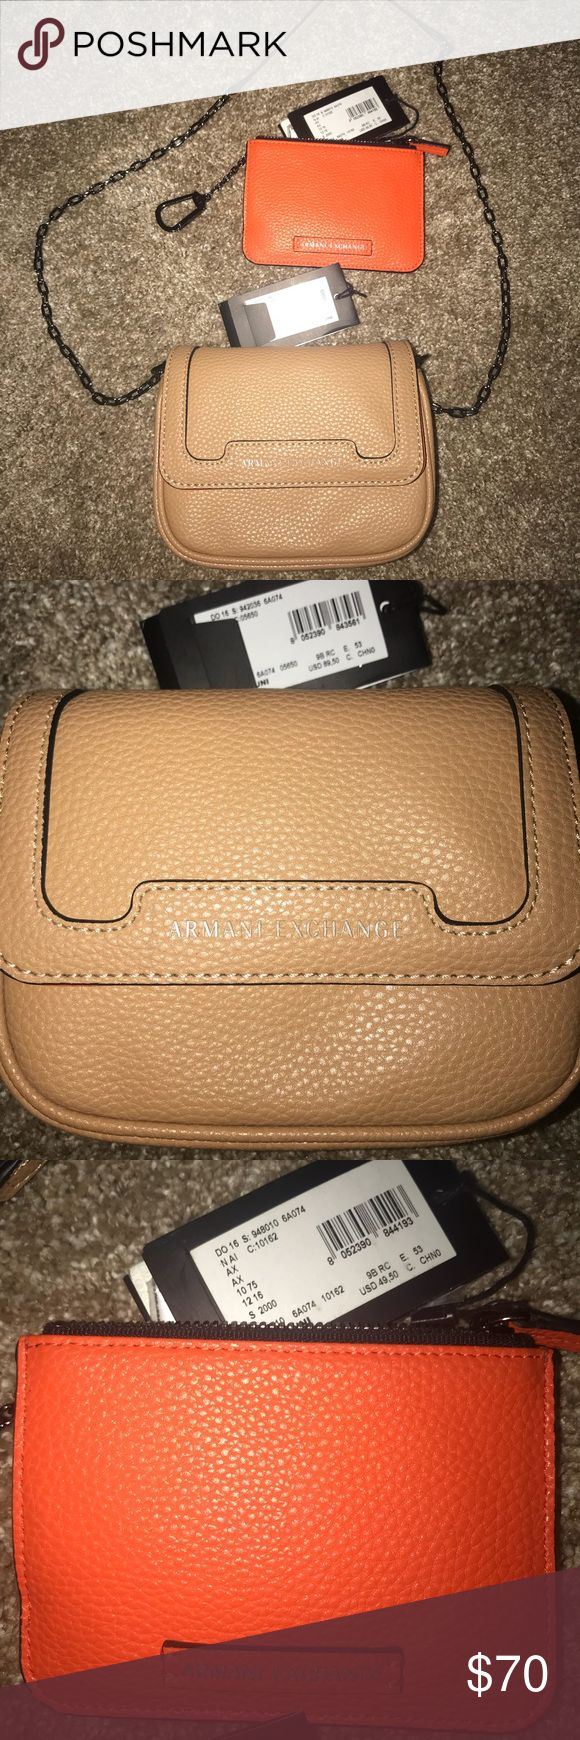 Armani Exchange mini crossbody+matching coin purse NWT Armani exchange mini crossbody tan colored pebble leather with orange interior, original price $89.50 and NWT matching coin purse orange color, original price $49.50, PRICE REFLECTS BOTH ITEMS SOLD TOGETHER Armani Exchange Bags Crossbody Bags